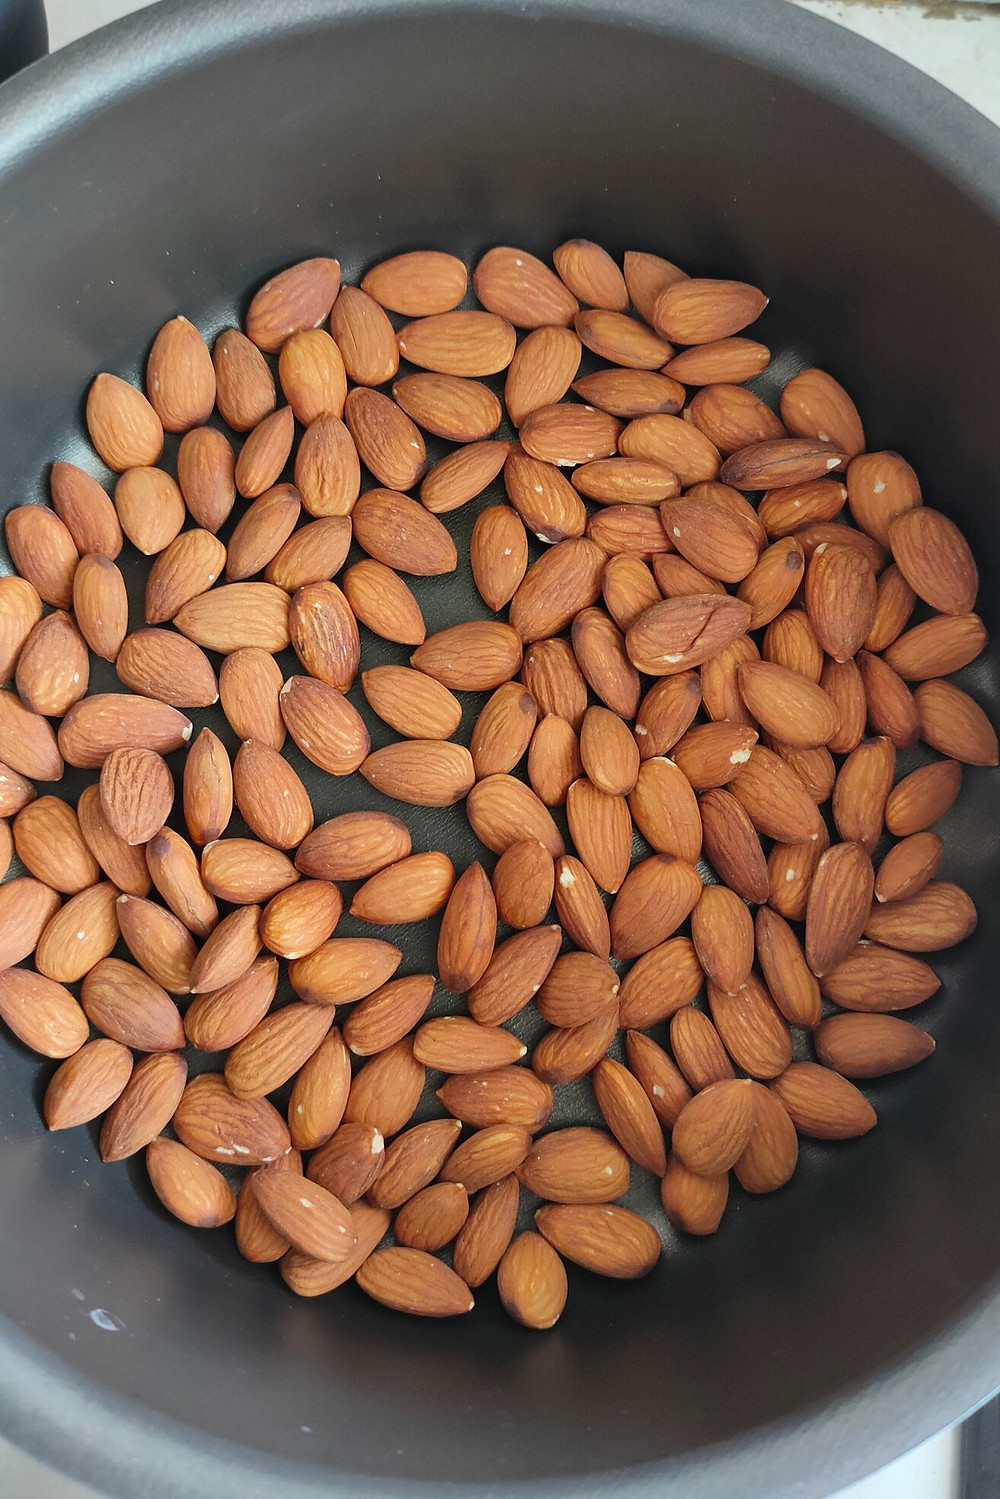 Pan-roasted almonds